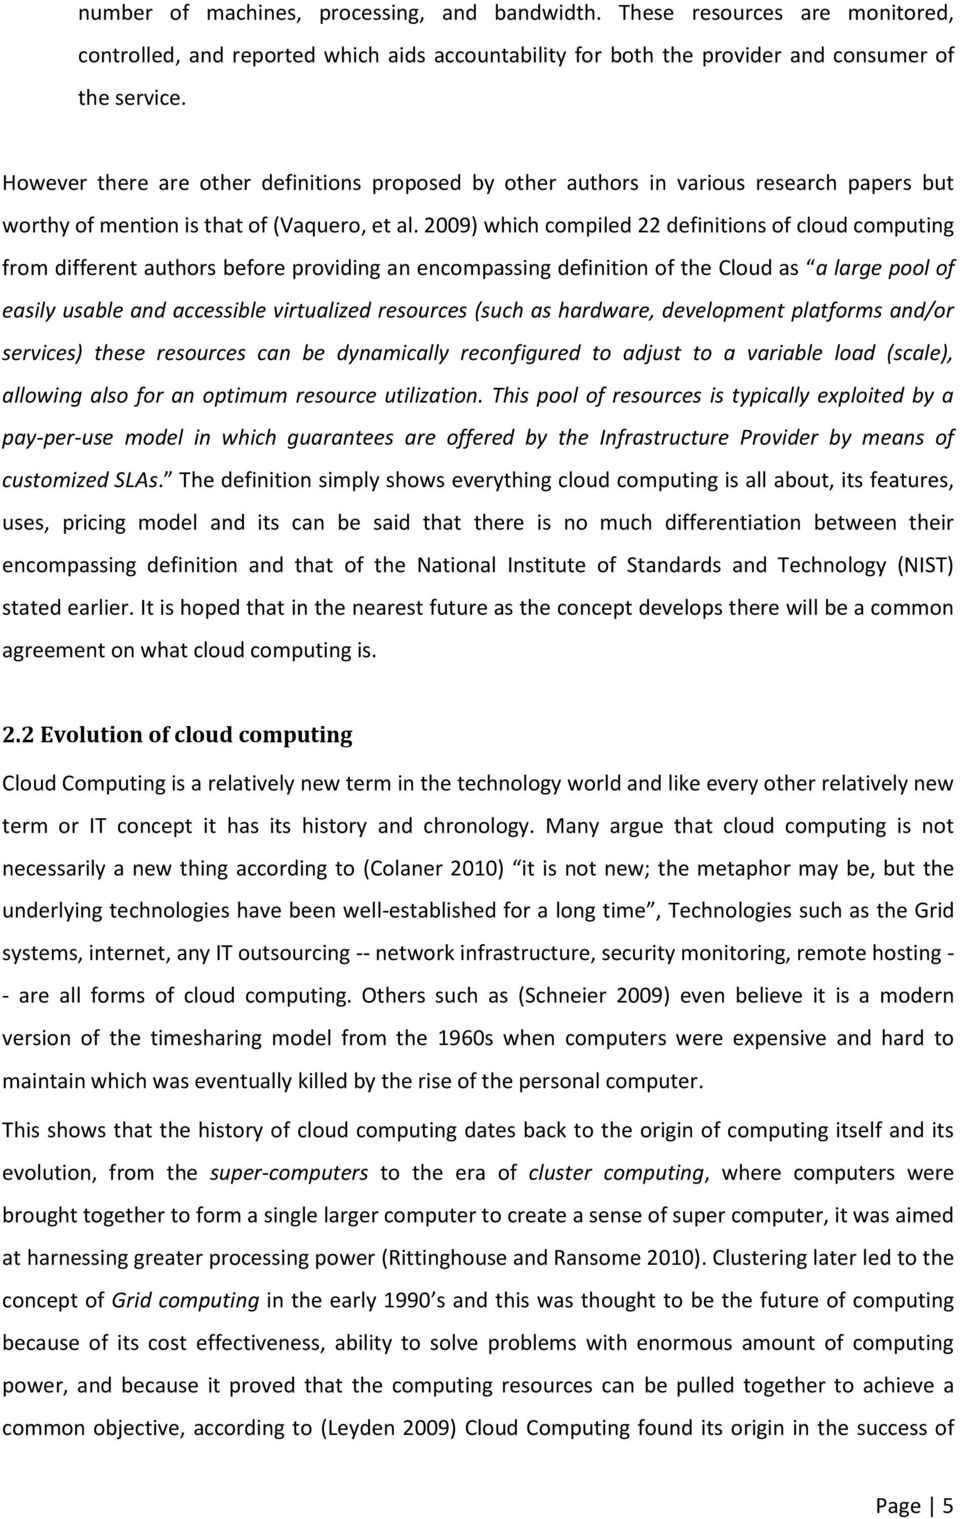 2009) which compiled 22 definitions of cloud computing from different authors before providing an encompassing definition of the Cloud as a large pool of easily usable and accessible virtualized